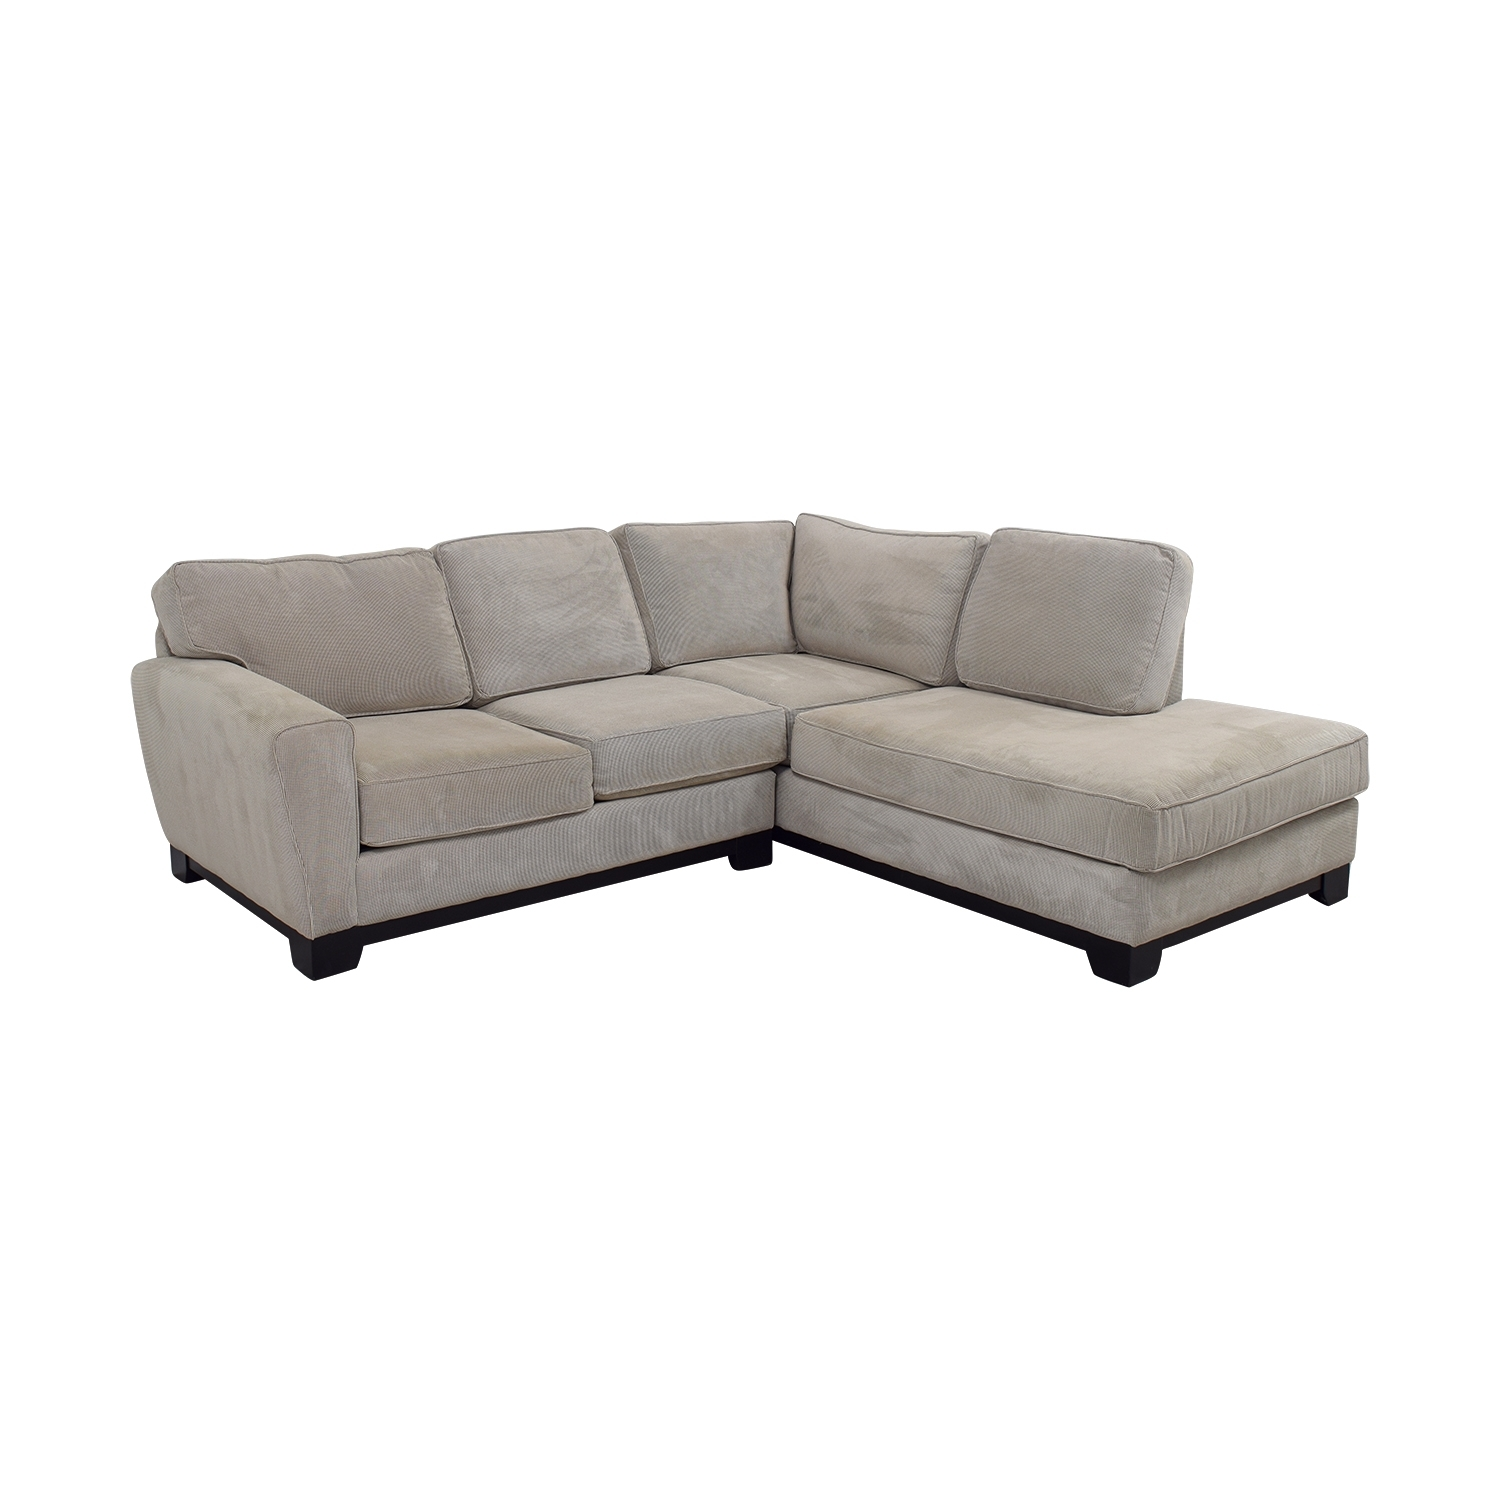 84% Off – Jordan's Furniture Jordan's Furniture Beige L Shaped Inside Jordans Sectional Sofas (View 3 of 10)